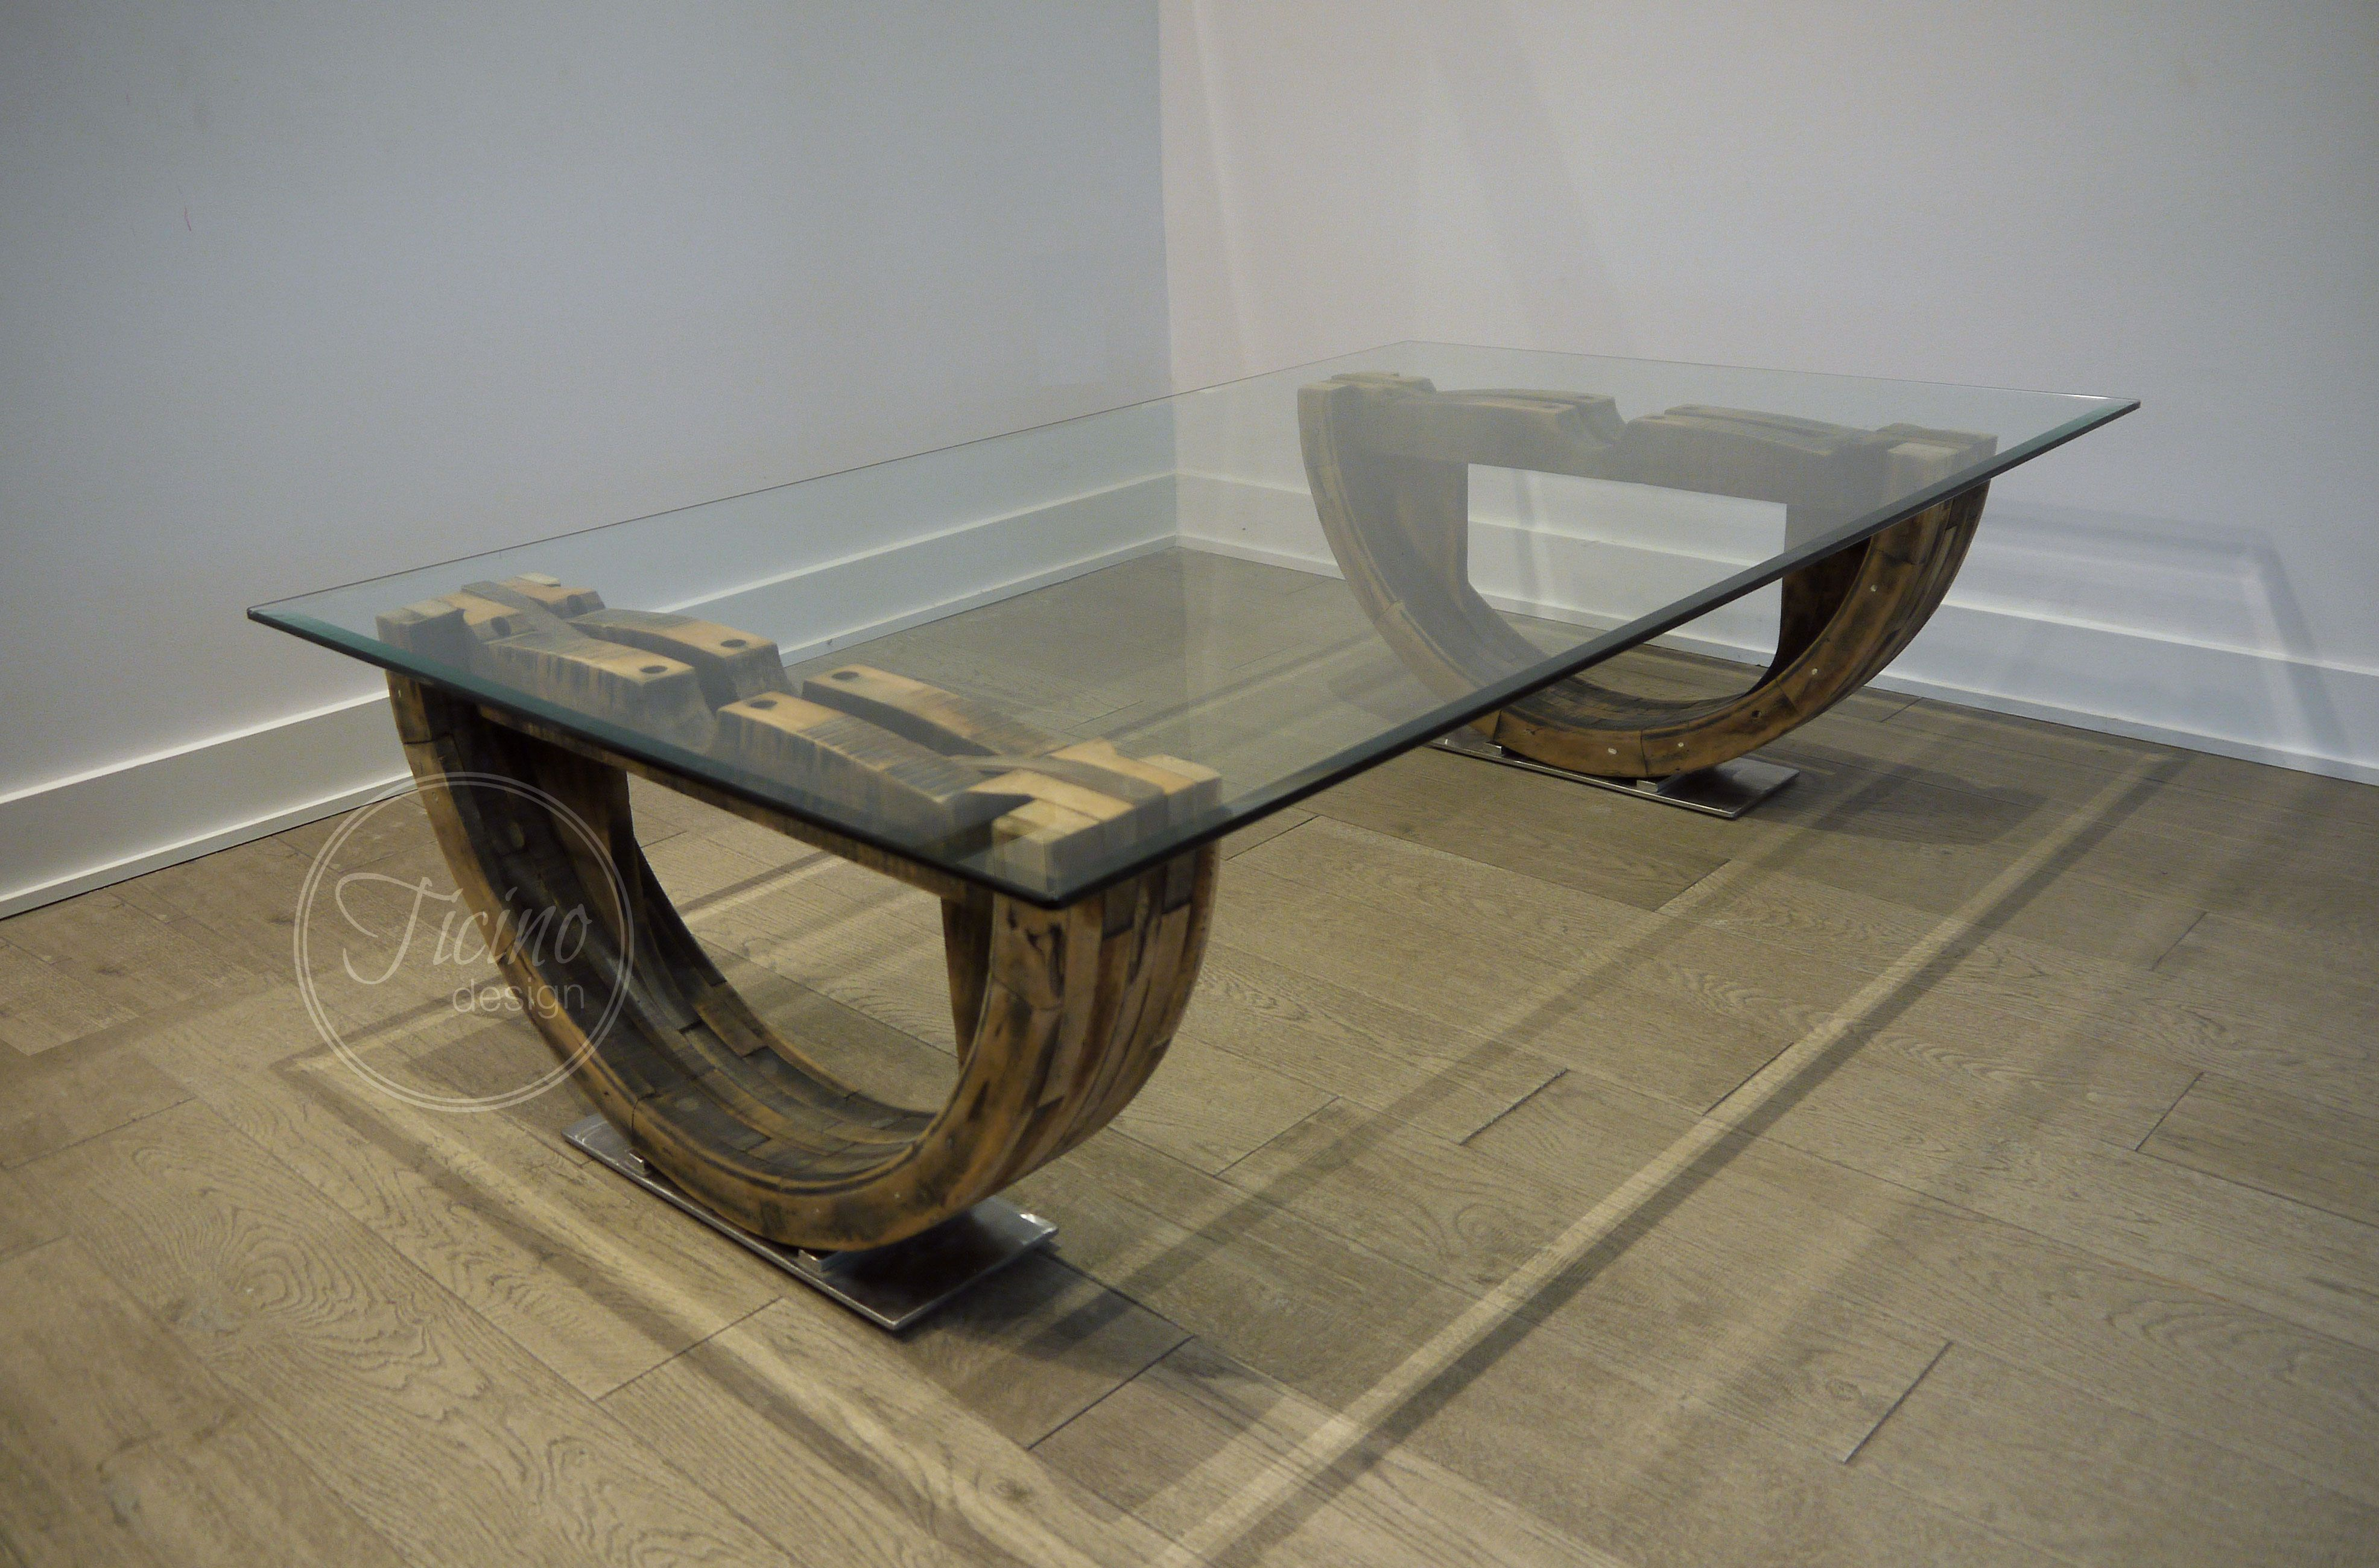 - Reclaimed Wood Coffee Table Maisons Contemporaines, Maison